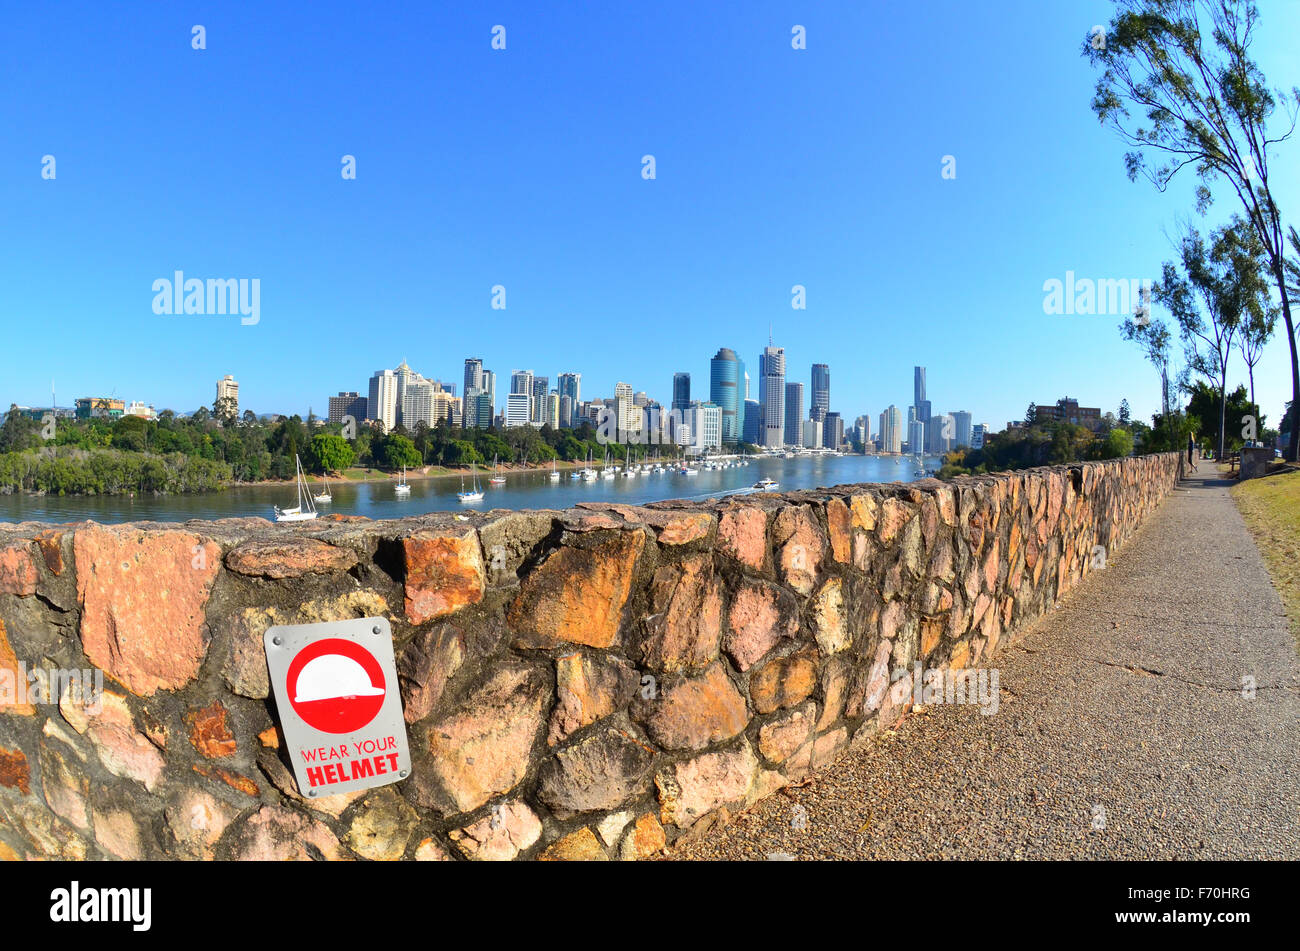 Rock climbing area, Brisbane. - Stock Image